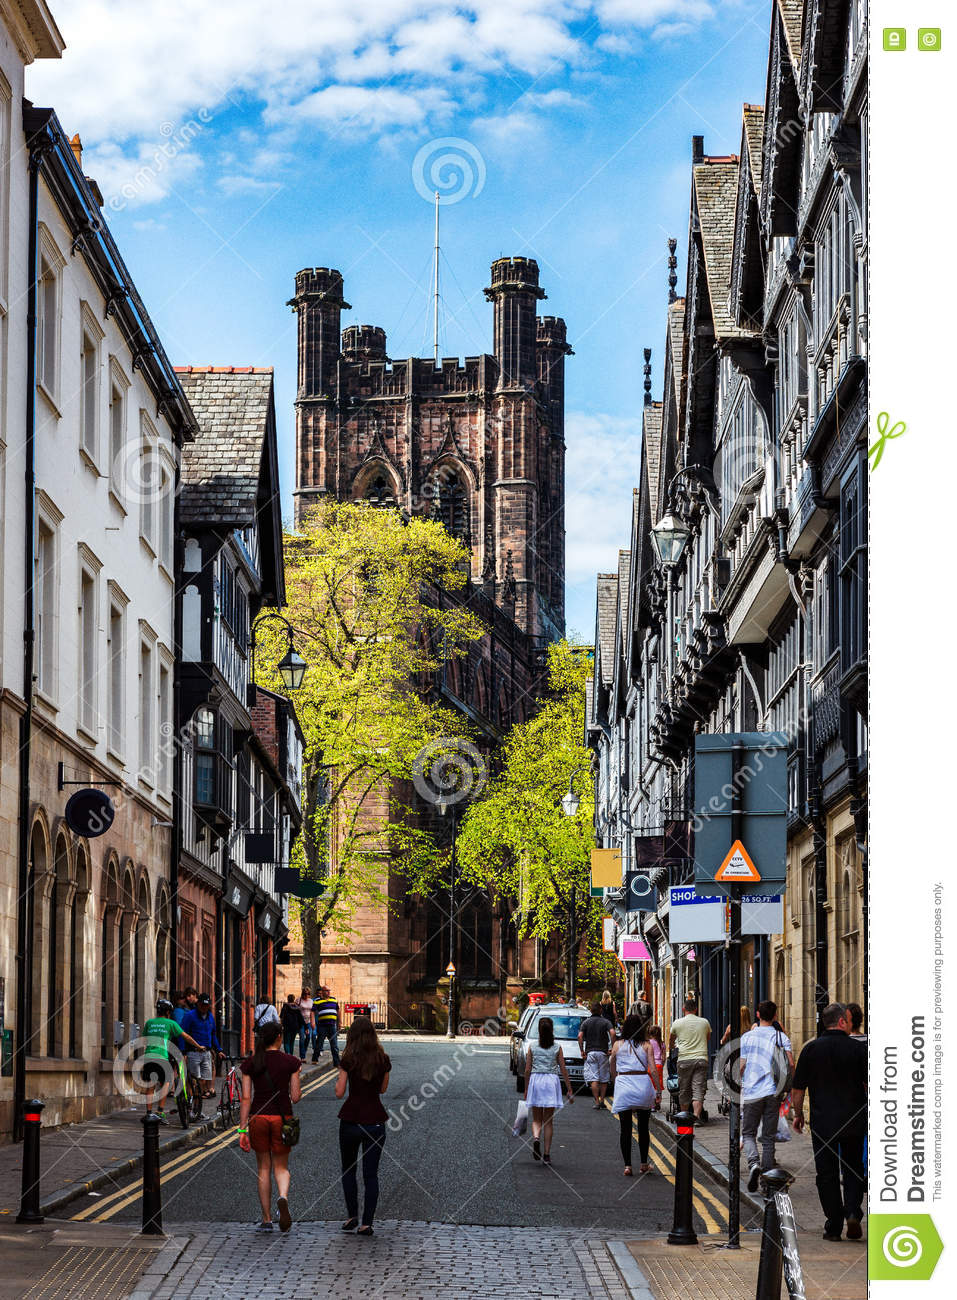 Chester stad, England